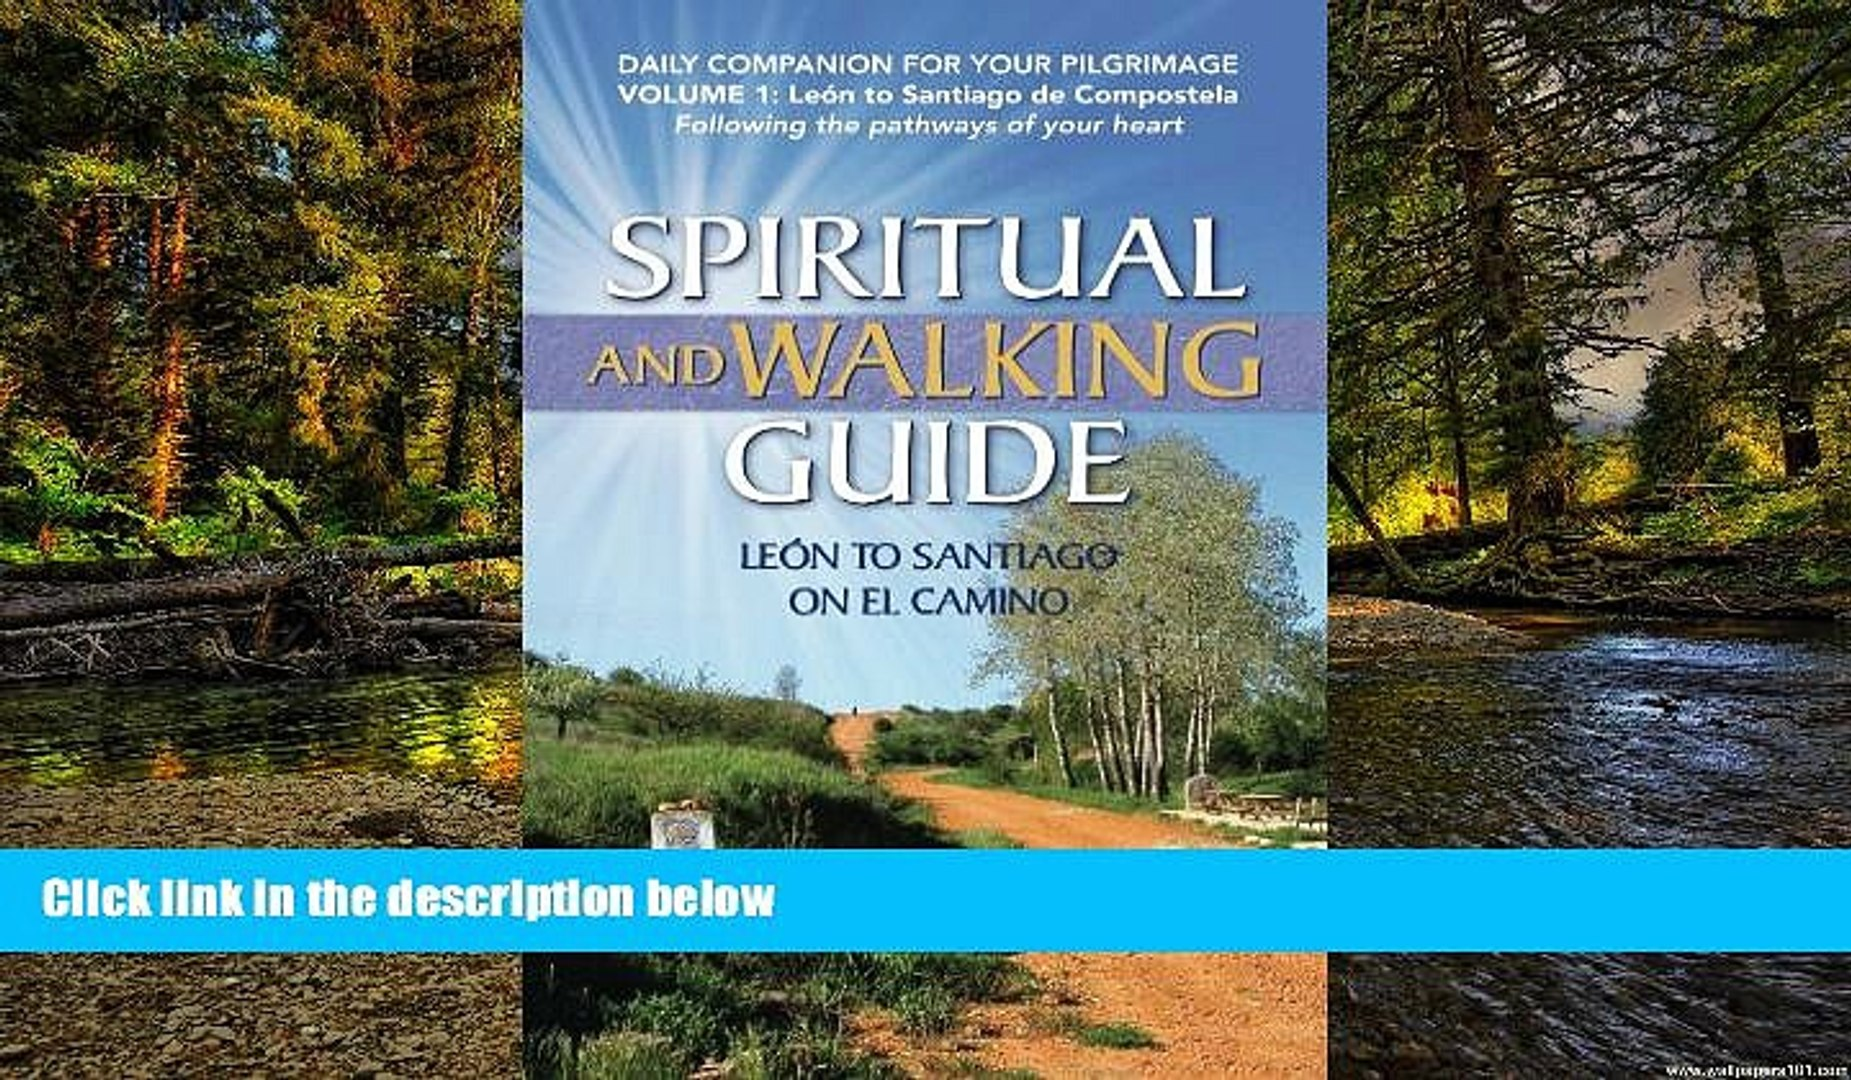 Ebook deals  Spiritual and Walking Guide: Leon to Santiago on El Camino (Spiritual and Walking